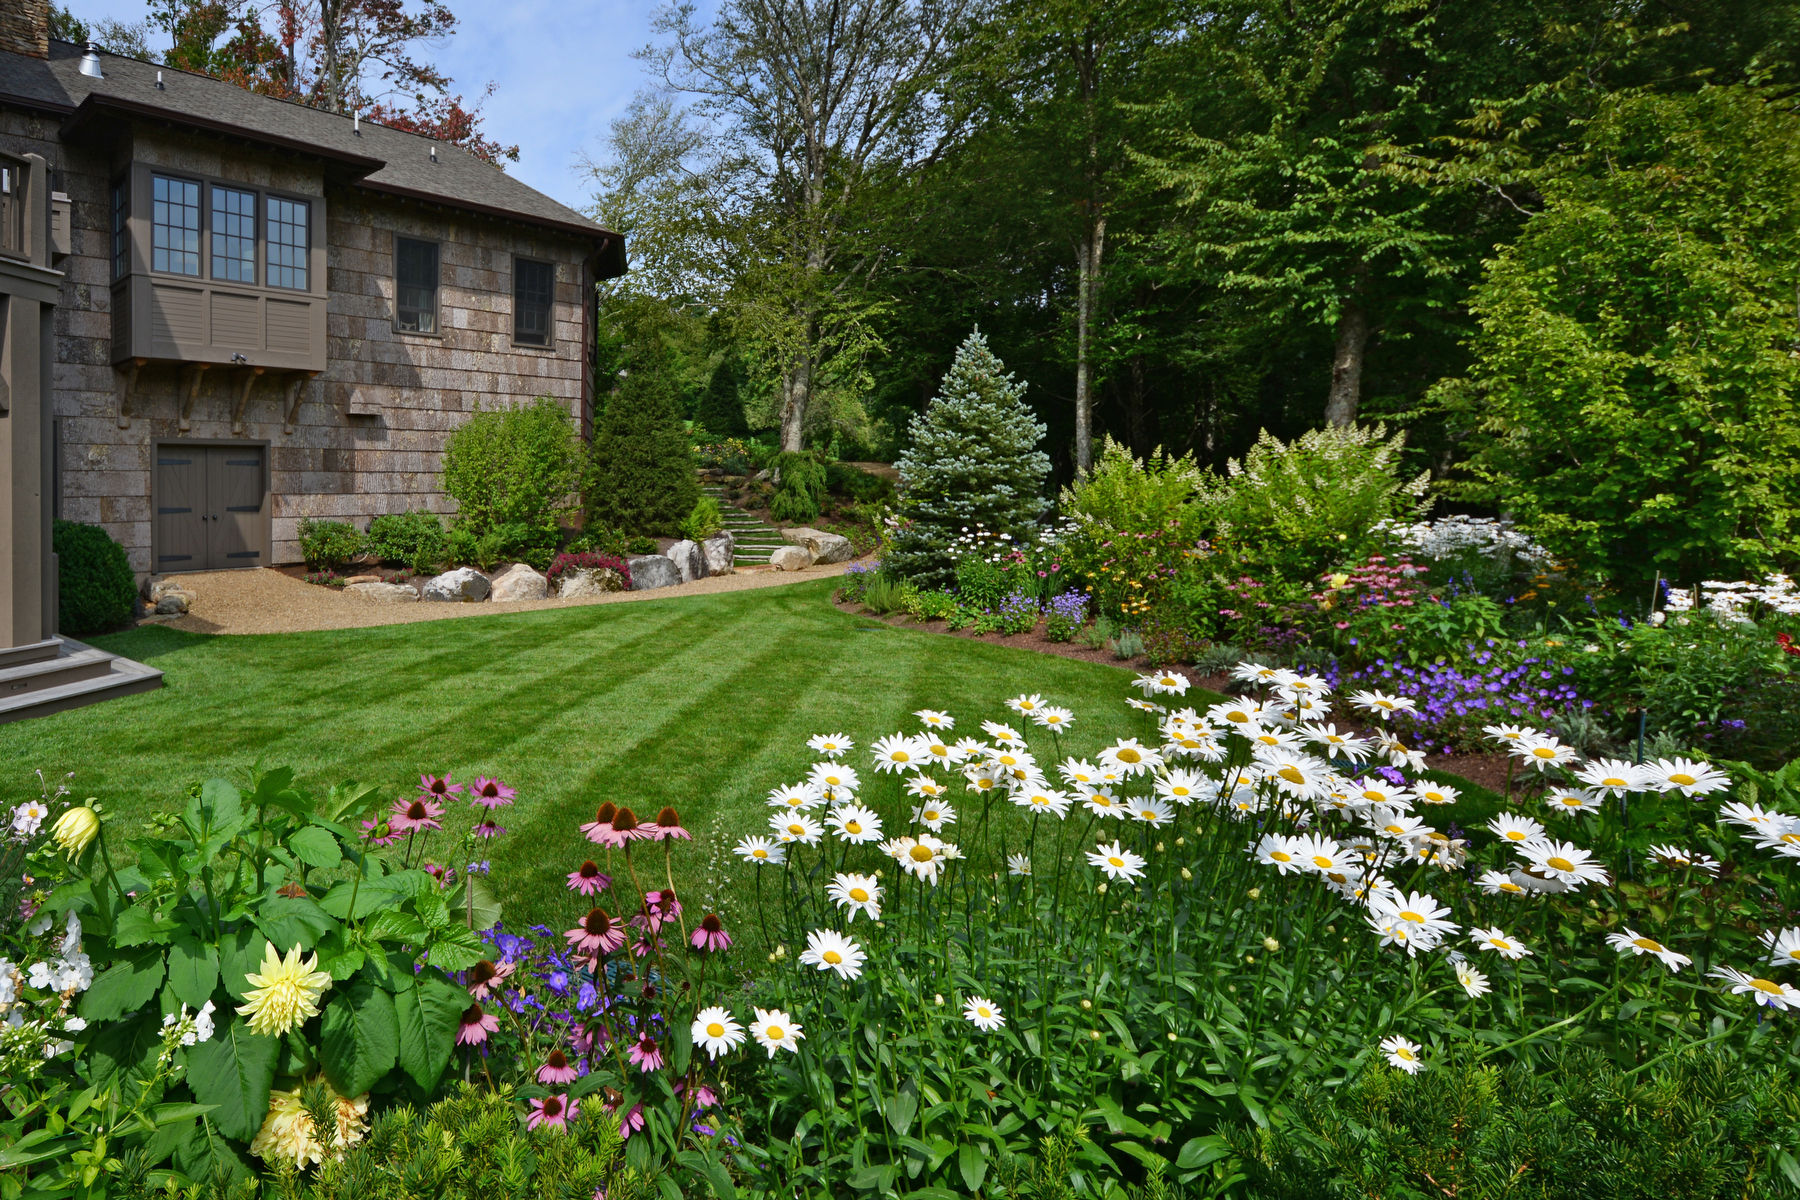 7 Secrets To A Healthy, Lush Lawn